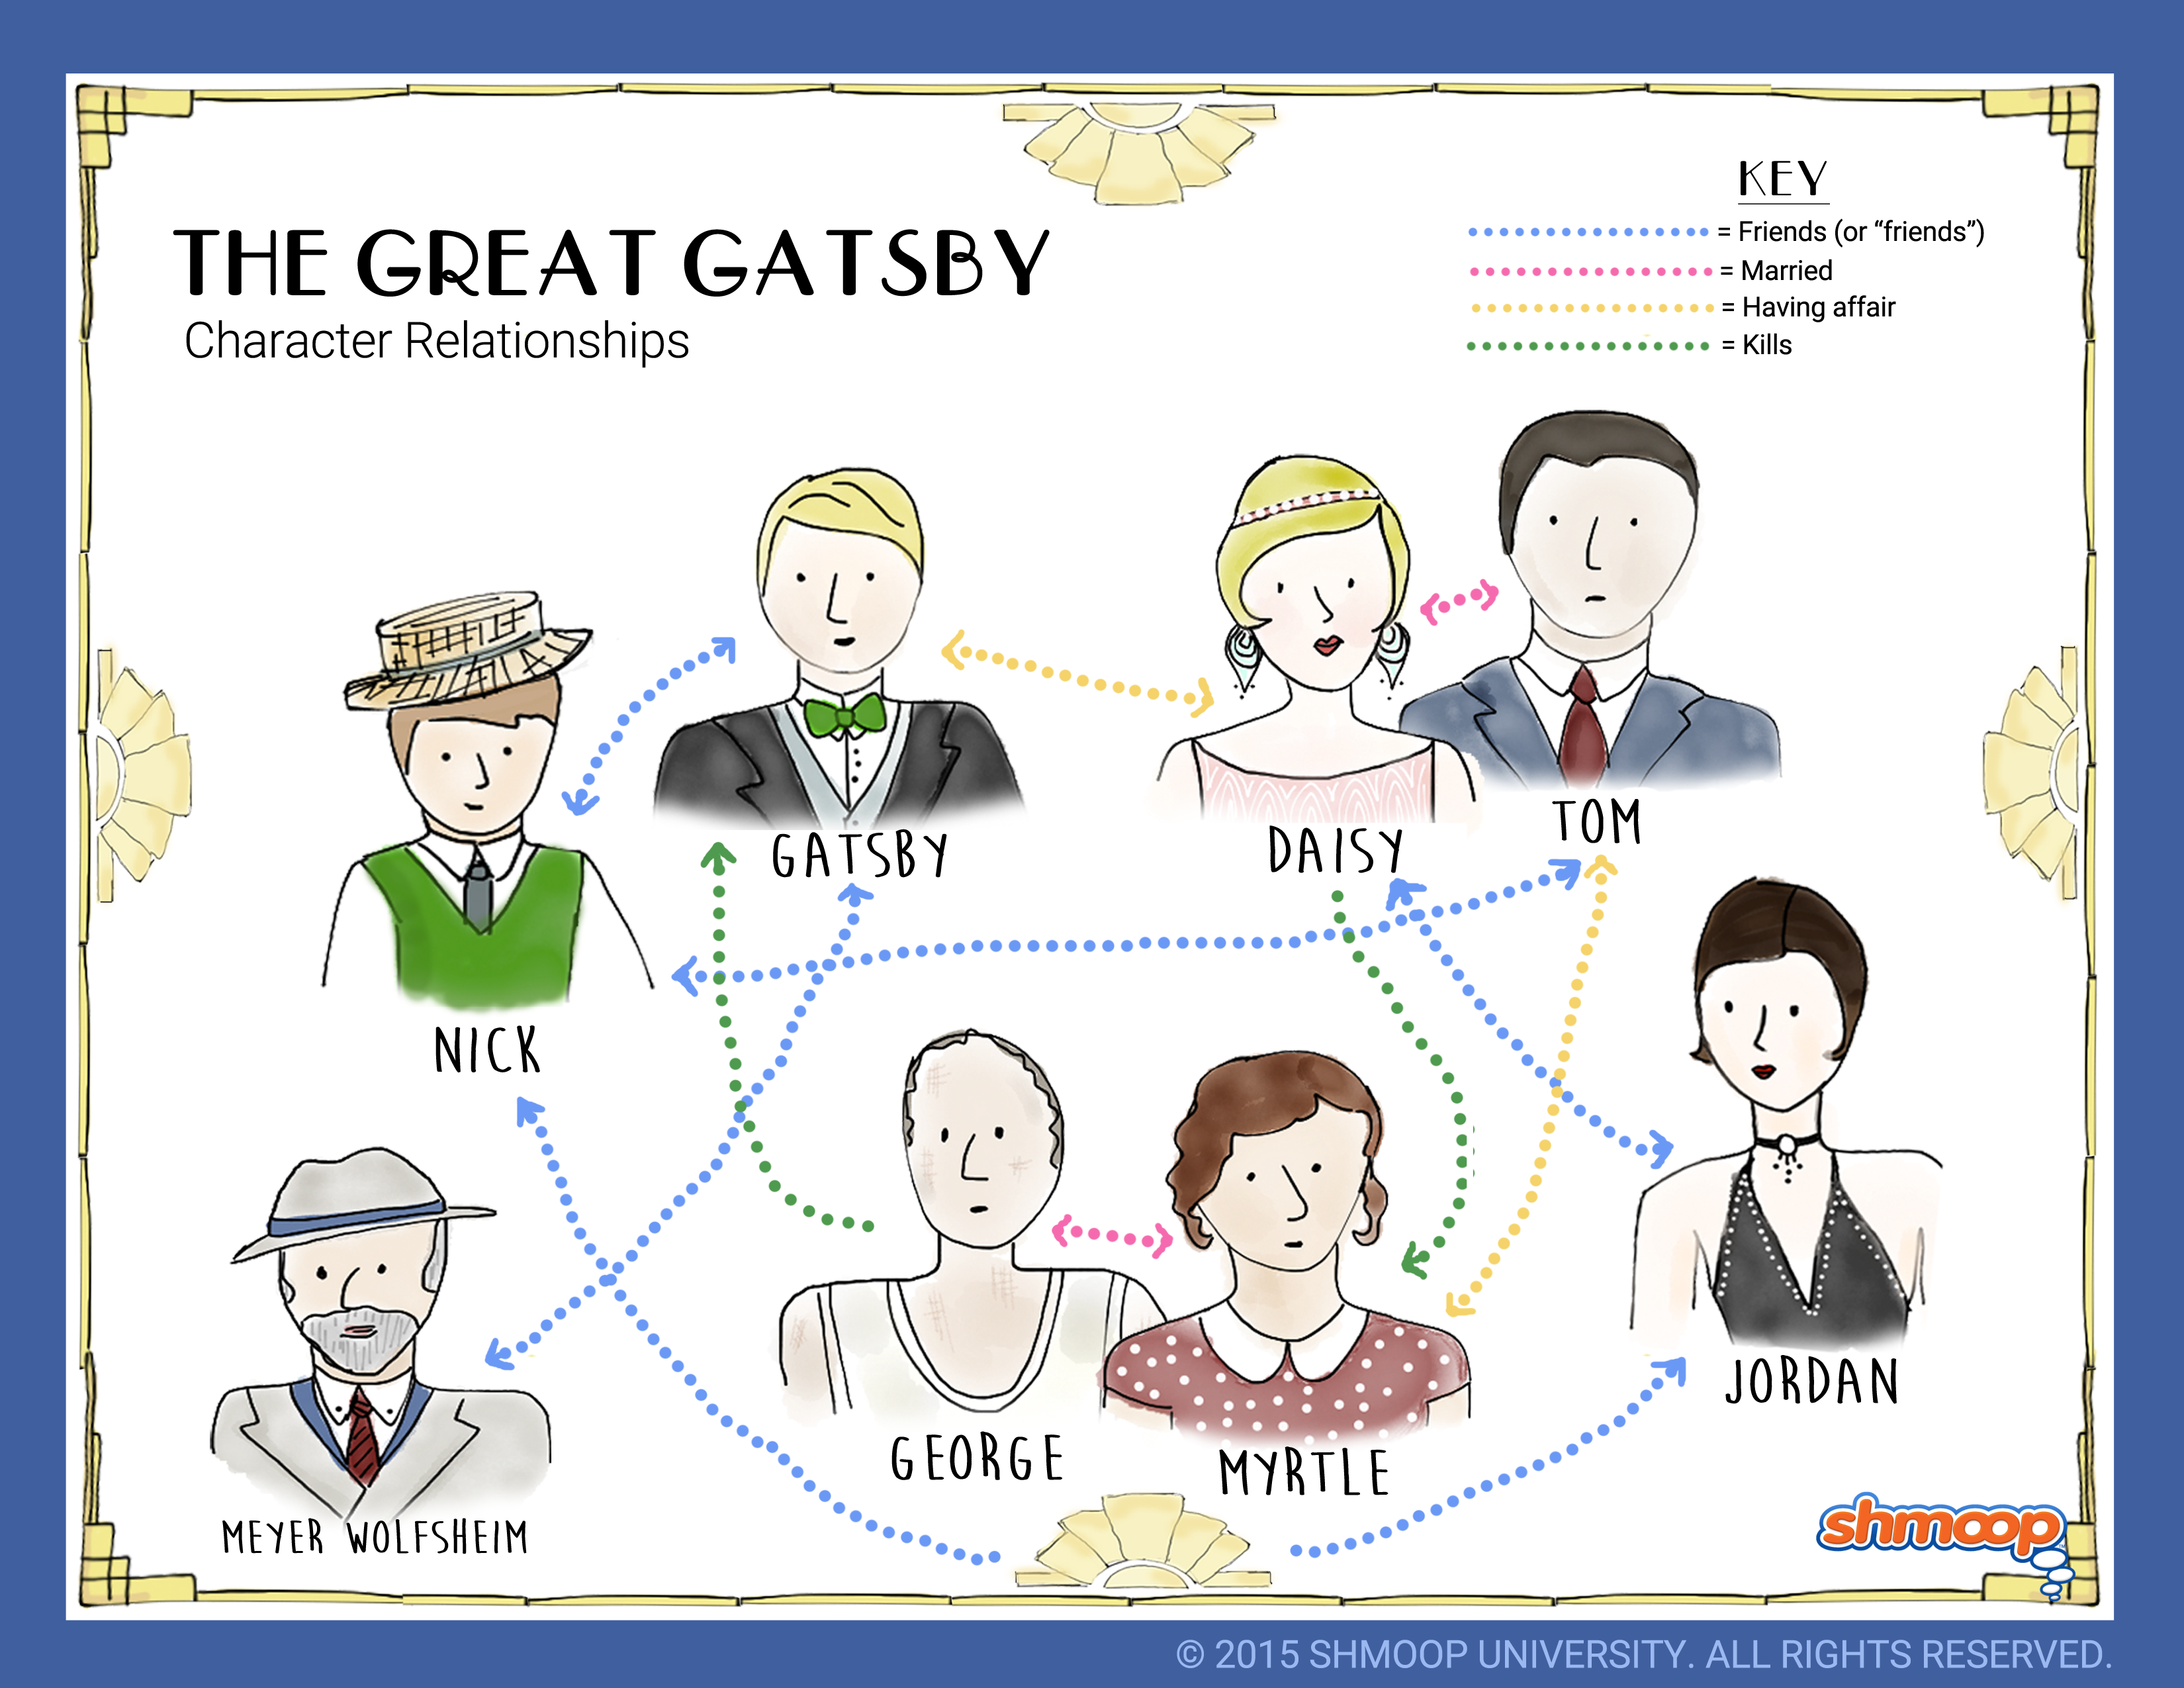 an analysis of the character jay gatsby in the novel the great gatsby by f scott fitzgerald The great gatsby character analysis jay  until late in the novel gatsby's reputation precedes him  great gatsby, written by f scott fitzgerald,.